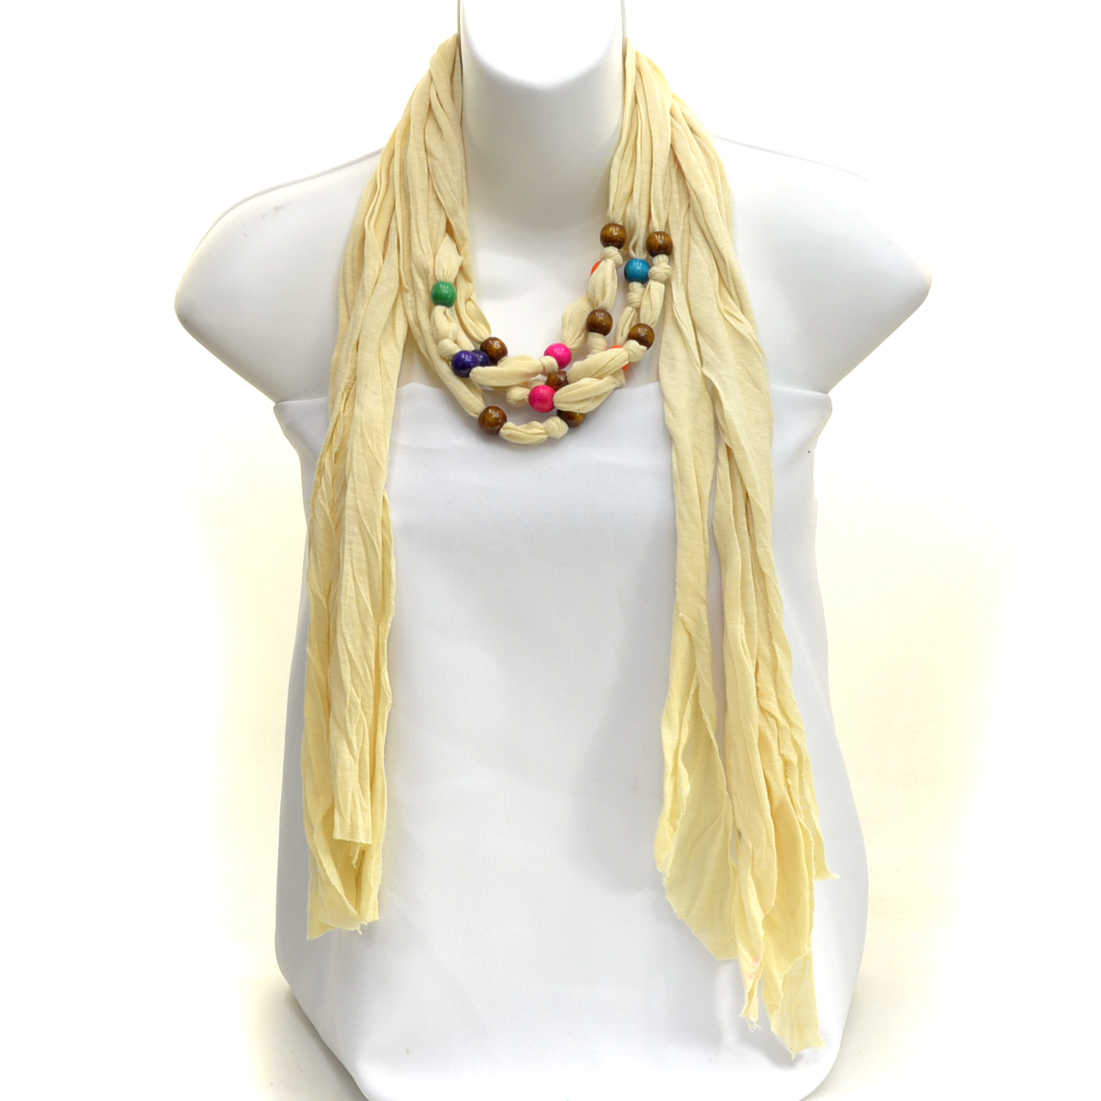 Wood Beads and Fringe Lightweight Spring Scarf